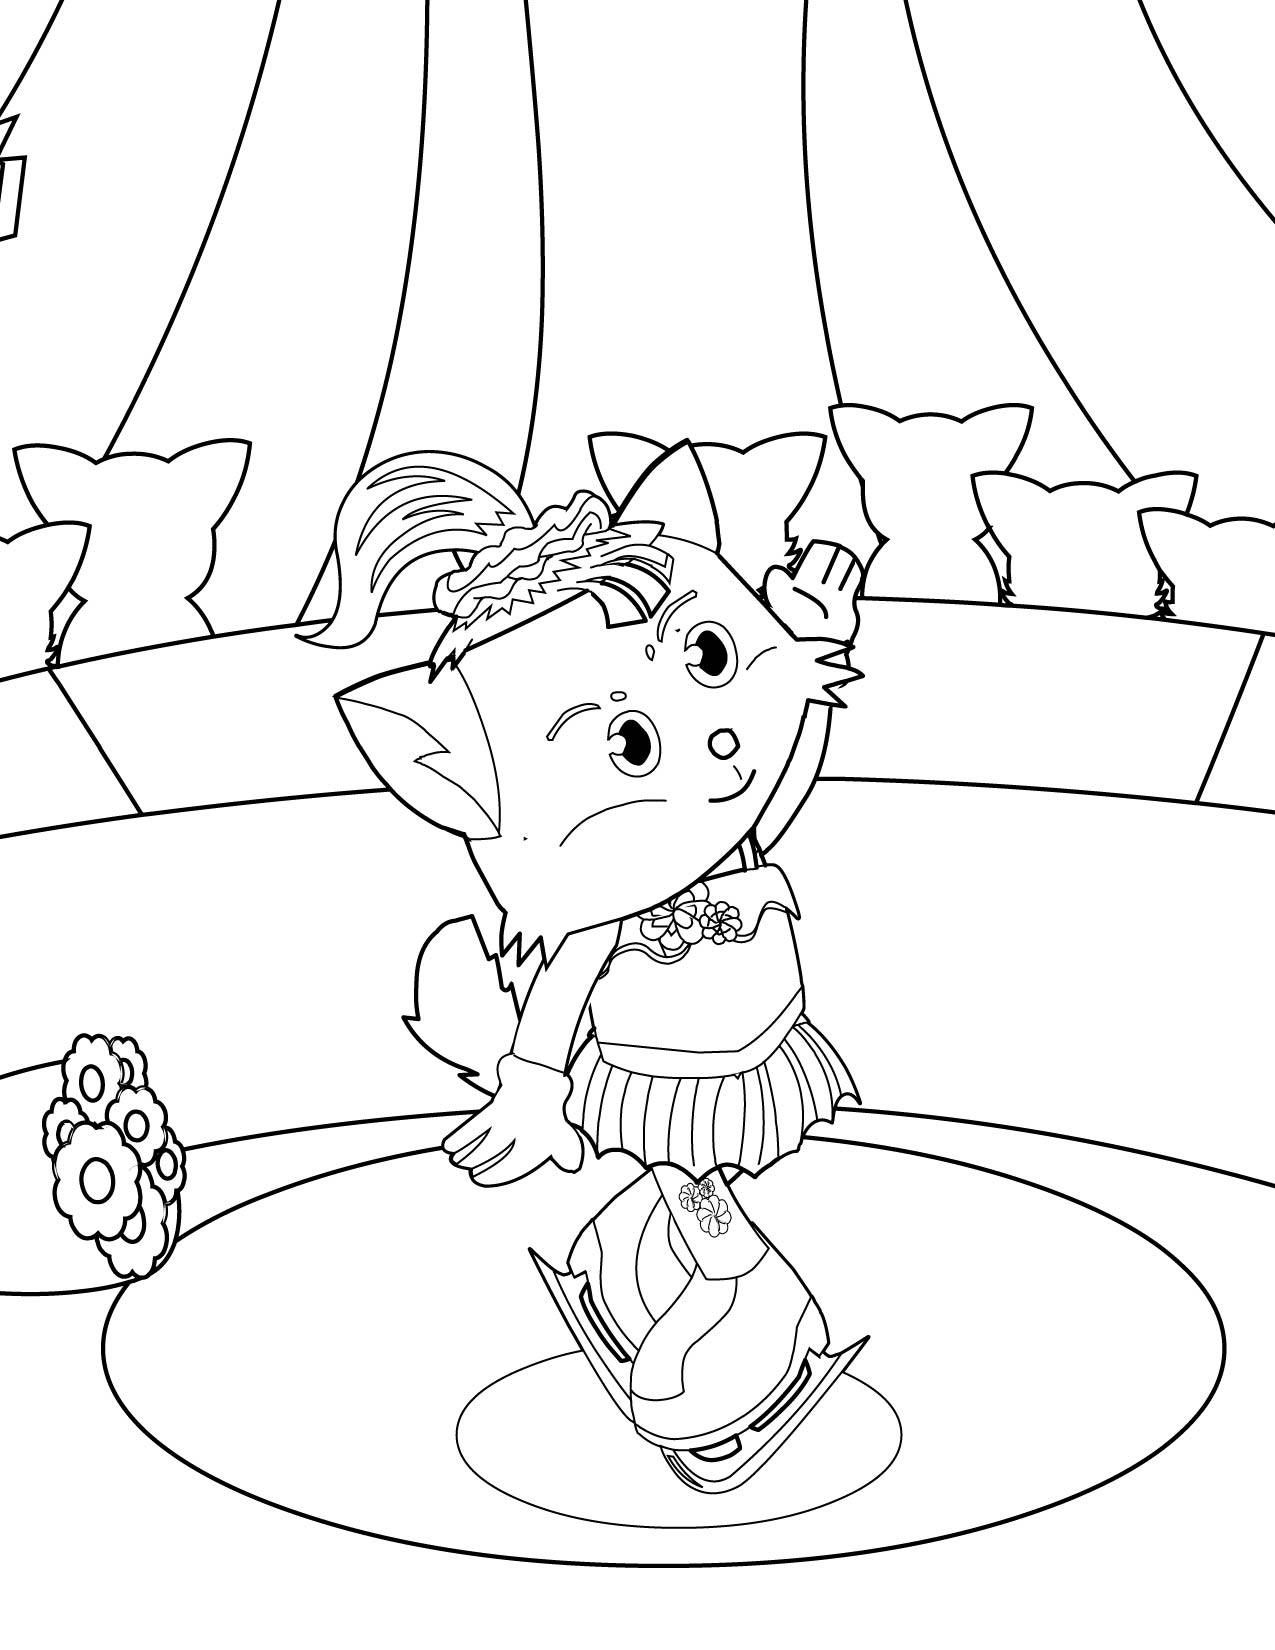 figure skater coloring page handipoints